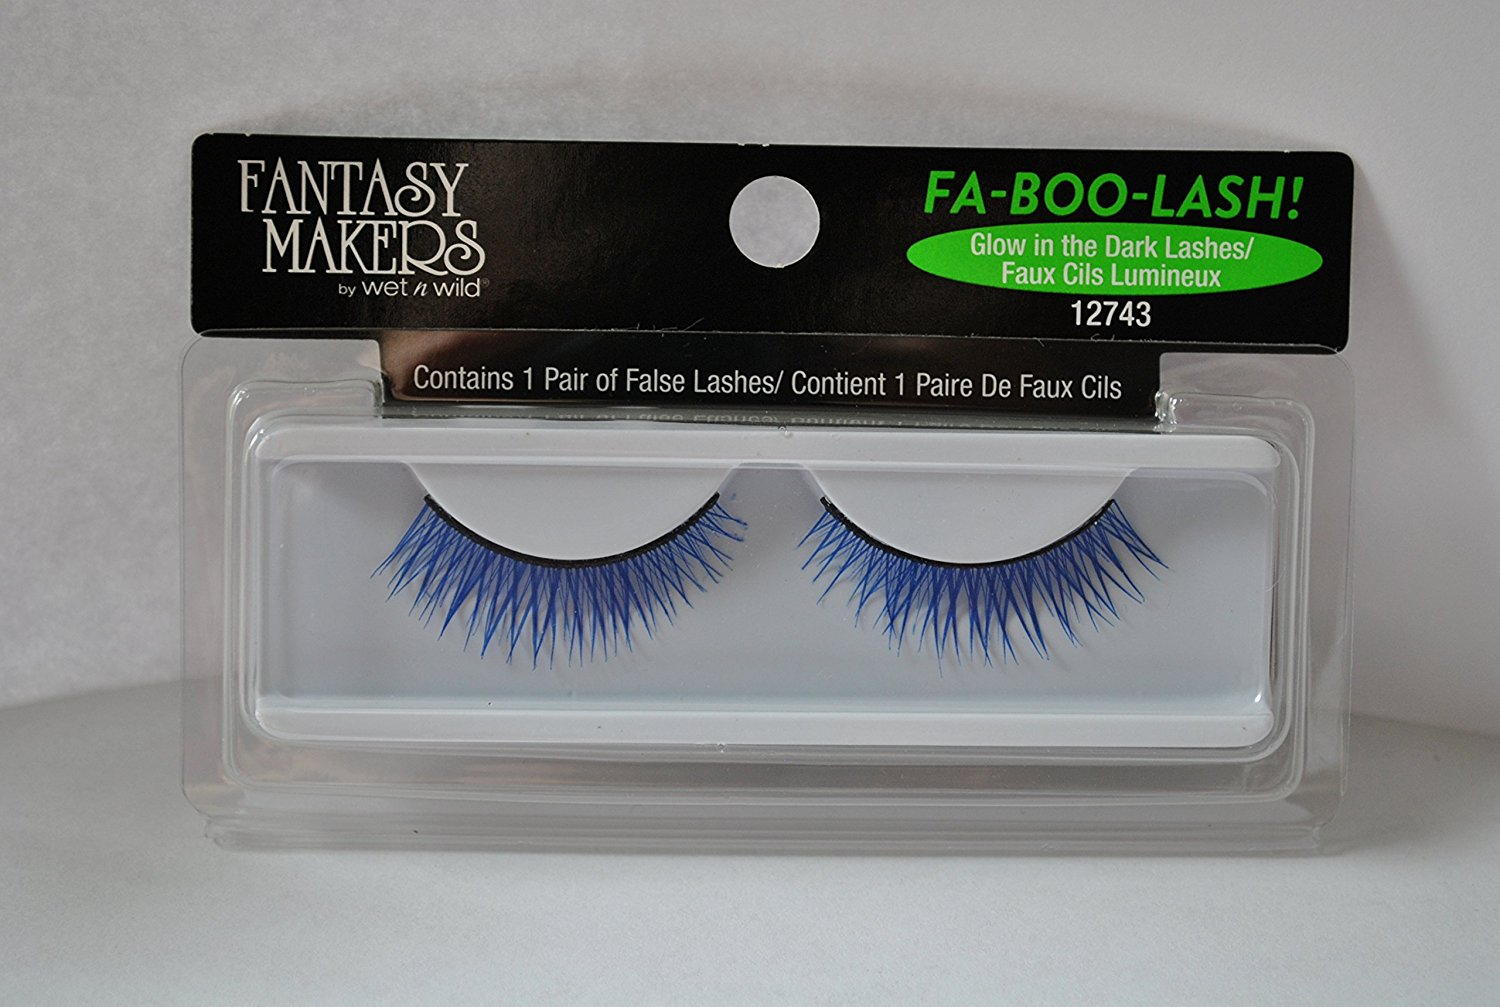 Fantasy Makers by Wet N Wild Fa-Boo-Lash - 12743 Glow in the Dark Lashes